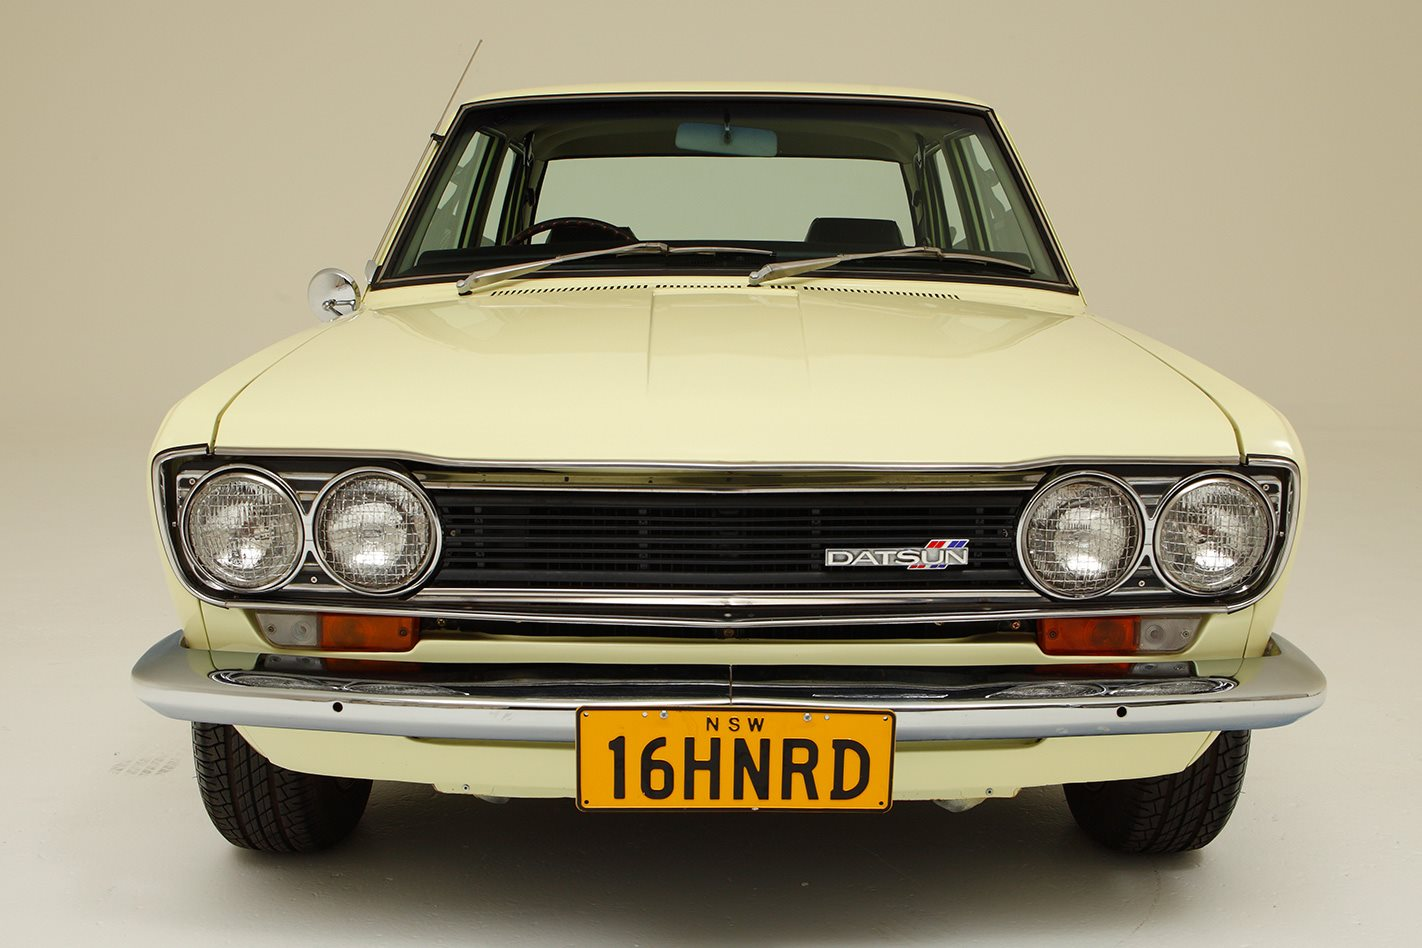 Datsun 1600 Legend series front